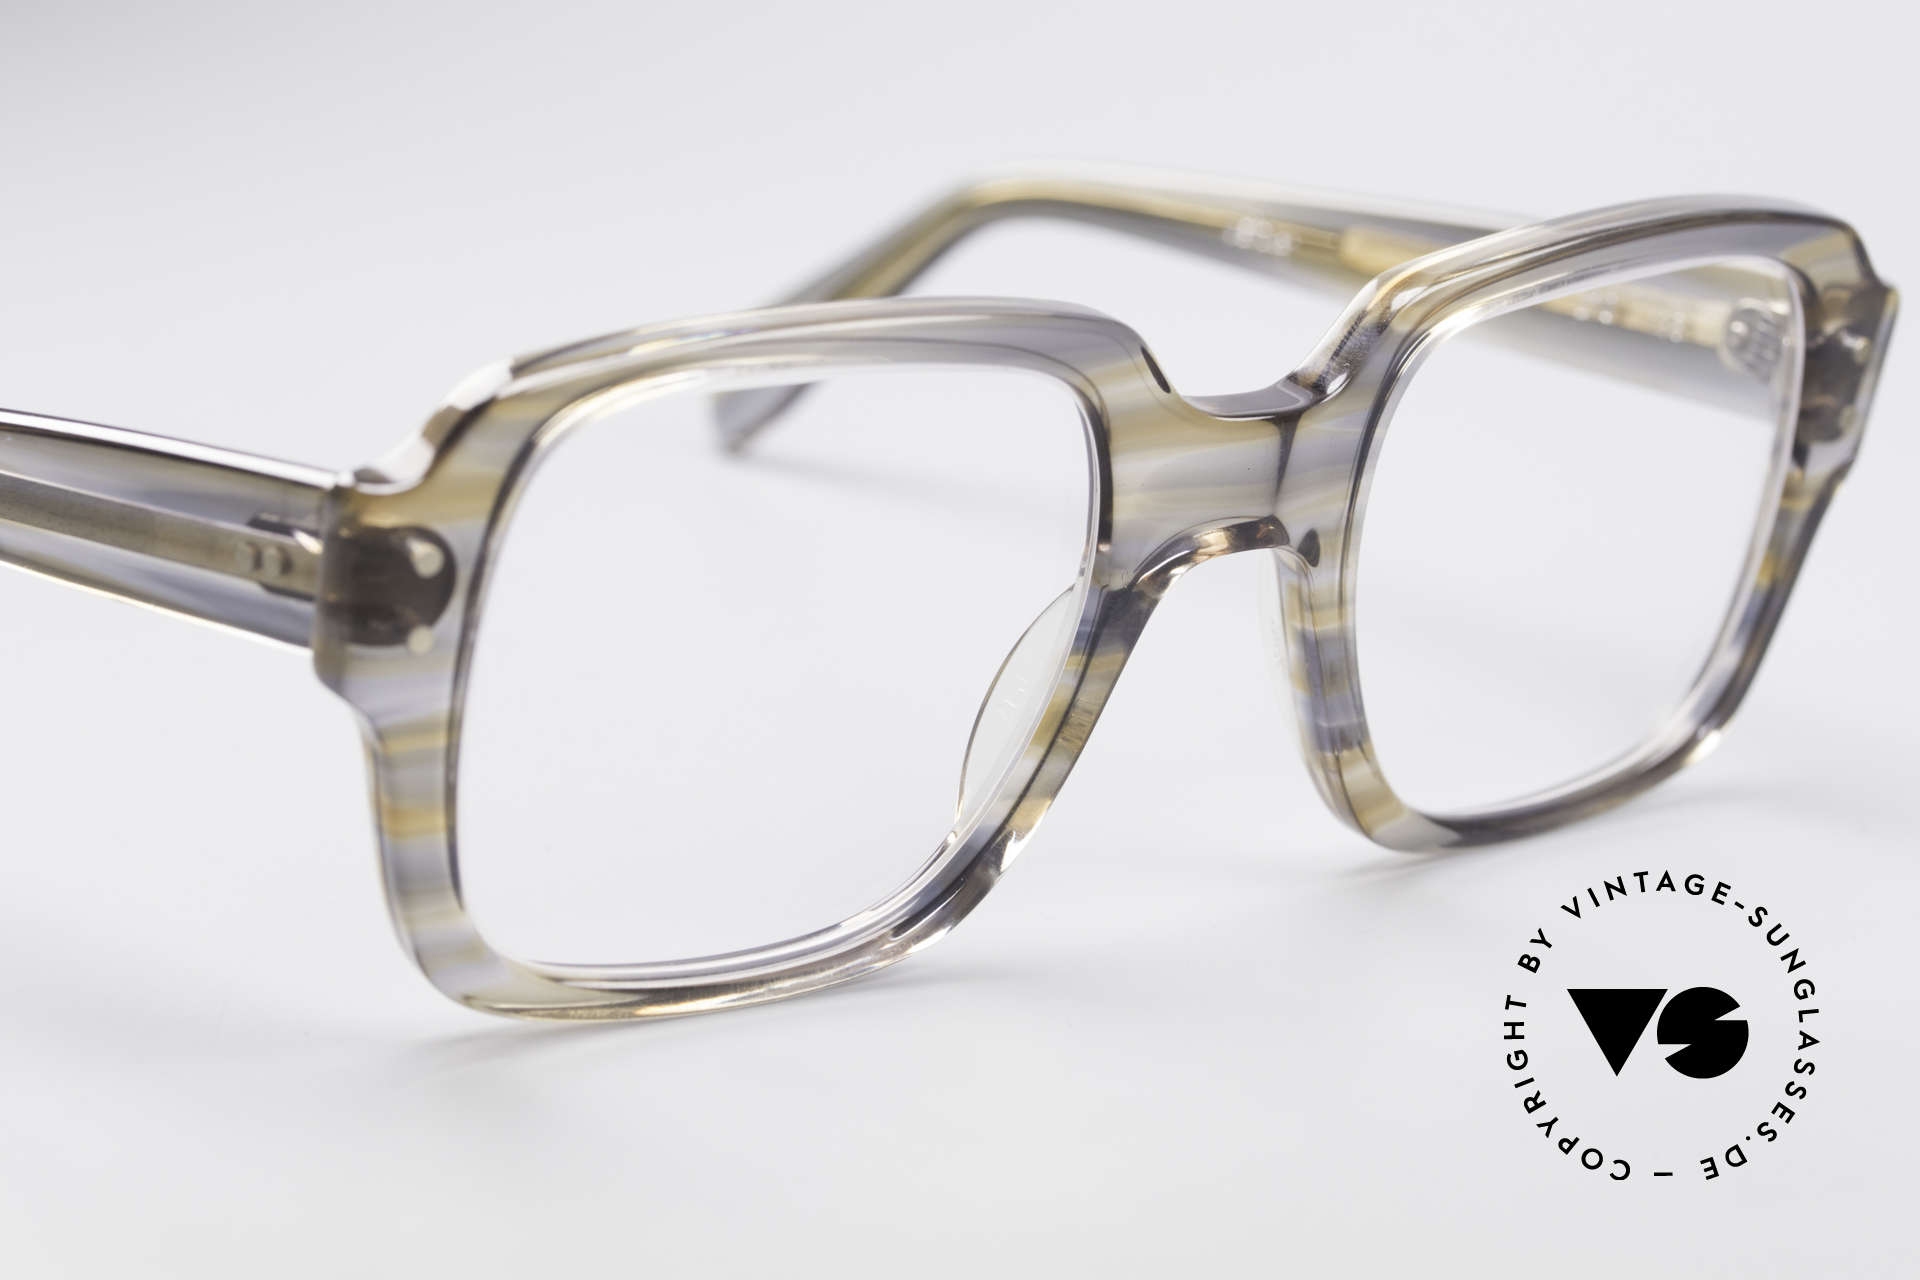 Metzler 448 70's Original Nerd Glasses, gray-brownish coloring (characteristical for the 1970's), Made for Men